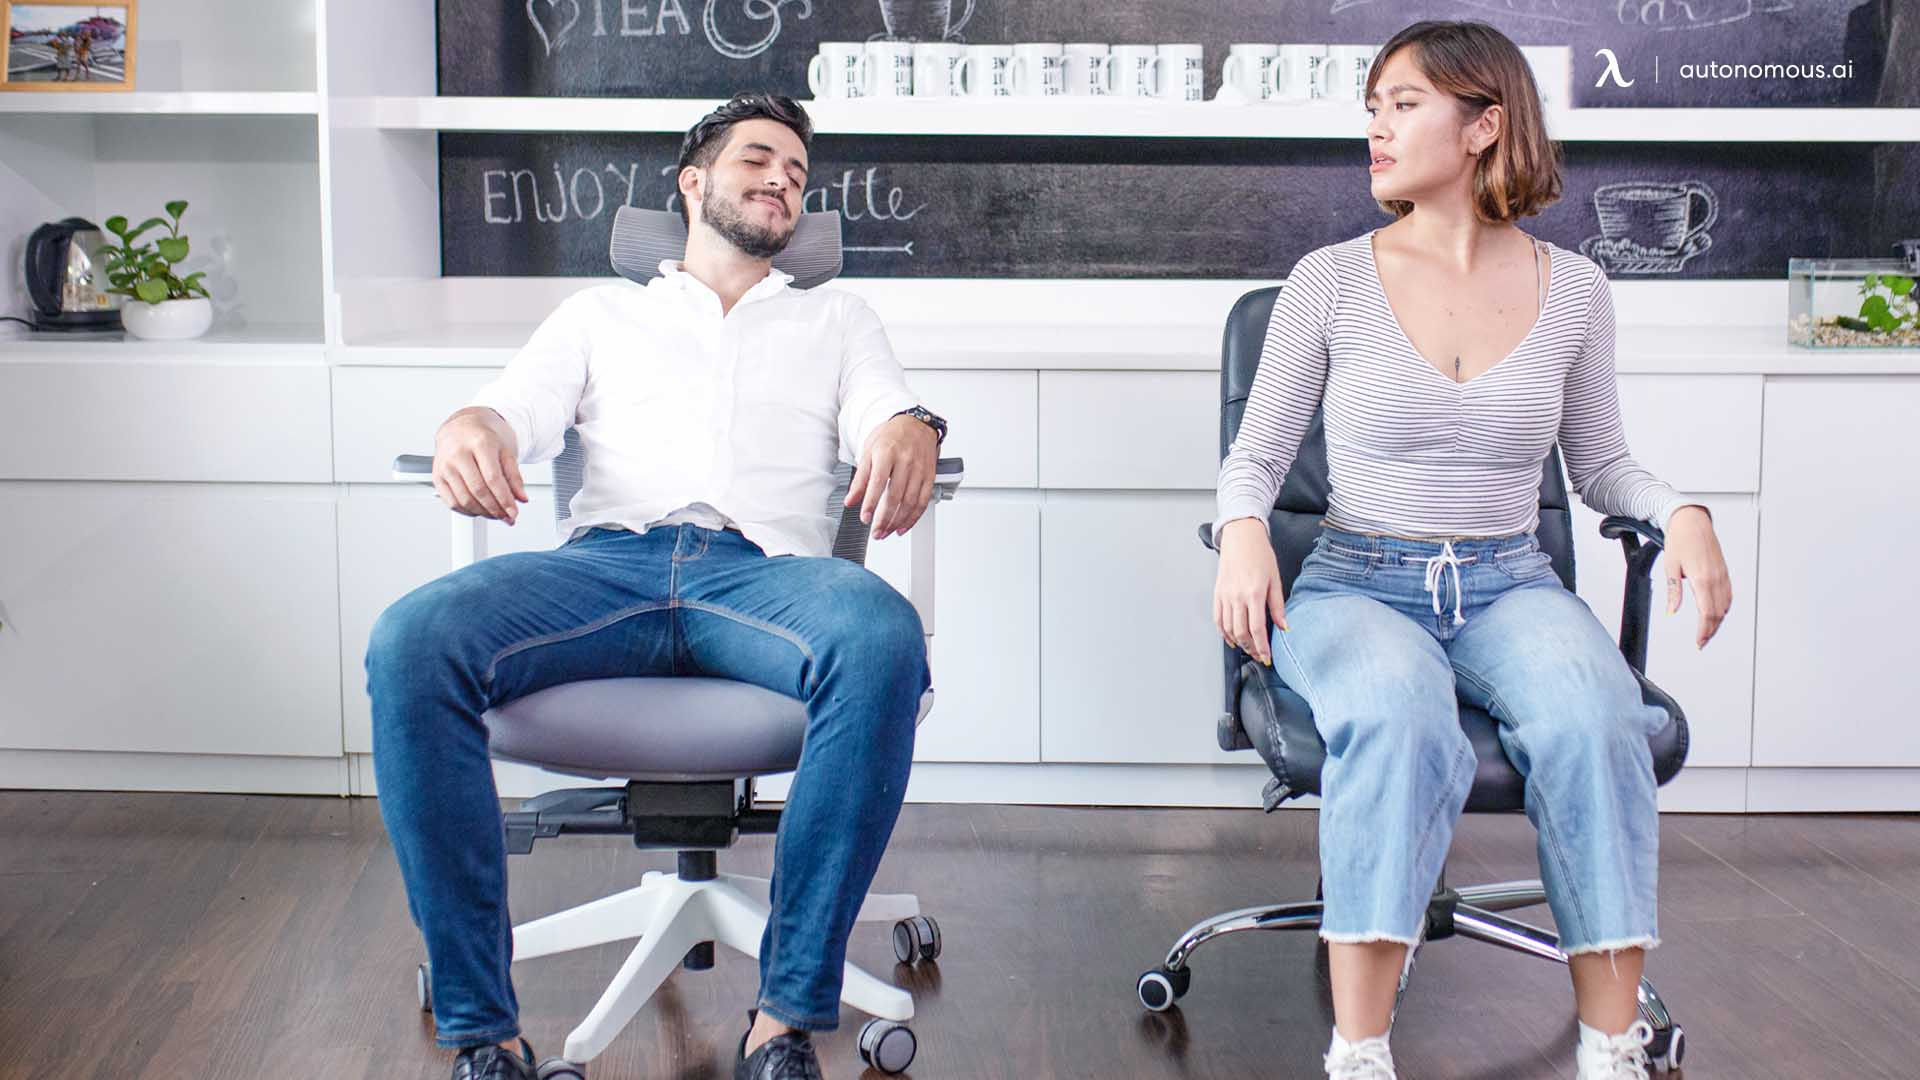 Why Should I Buy 24 Hour Office Chairs?